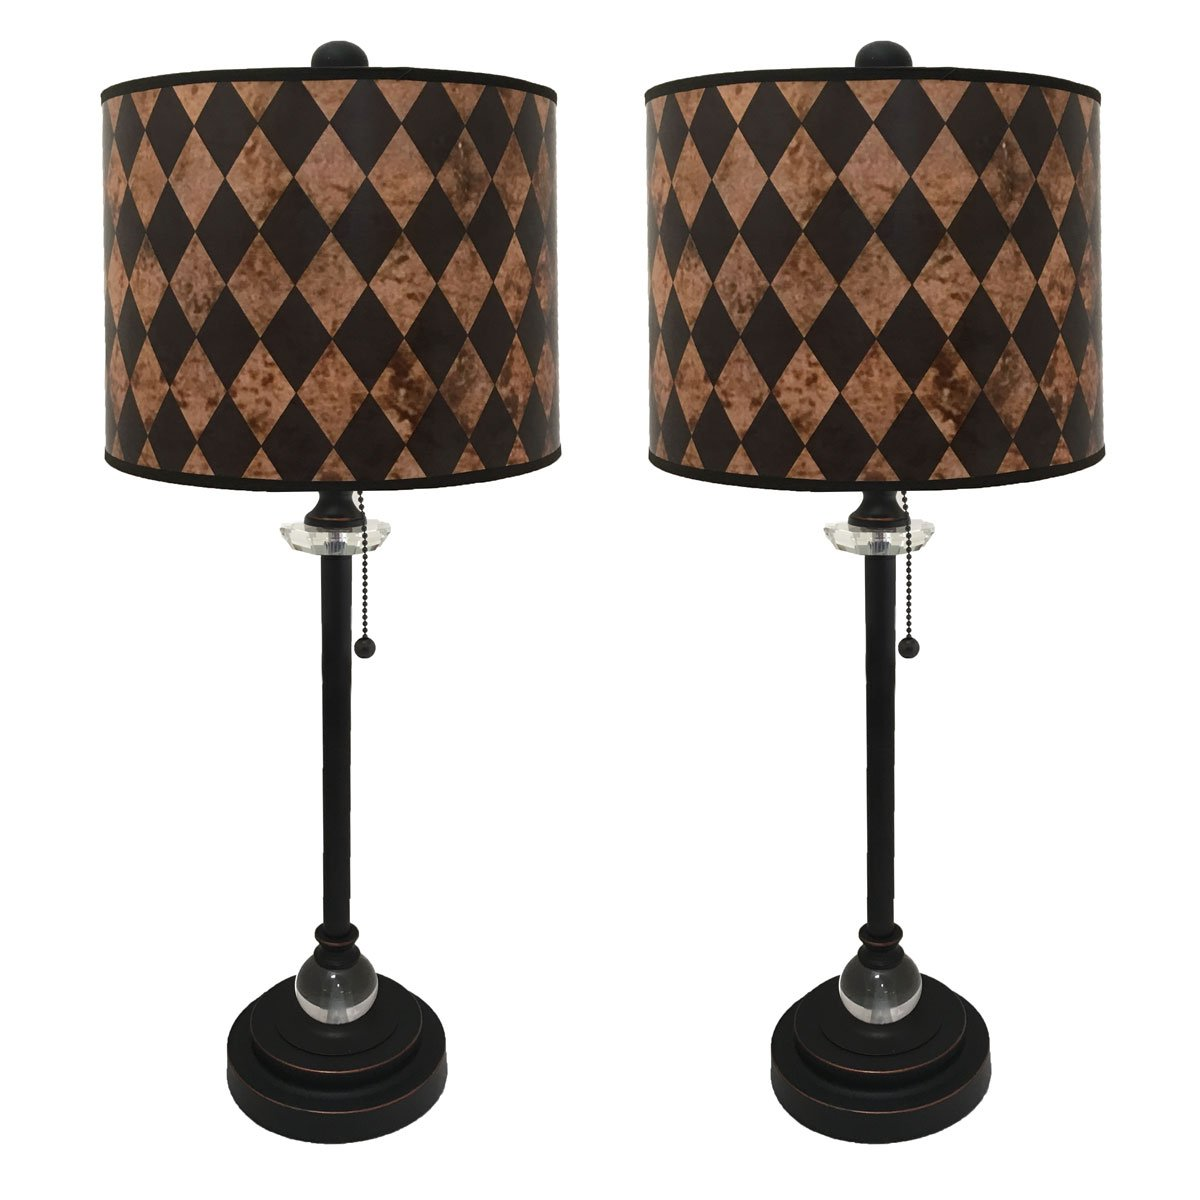 Royal Designs 28'' Crystal and Oil Rub Bronze Buffet Lamp with Vertical Black Diamond on Papyrus Design Hard Back Lamp Shade, Set of 2